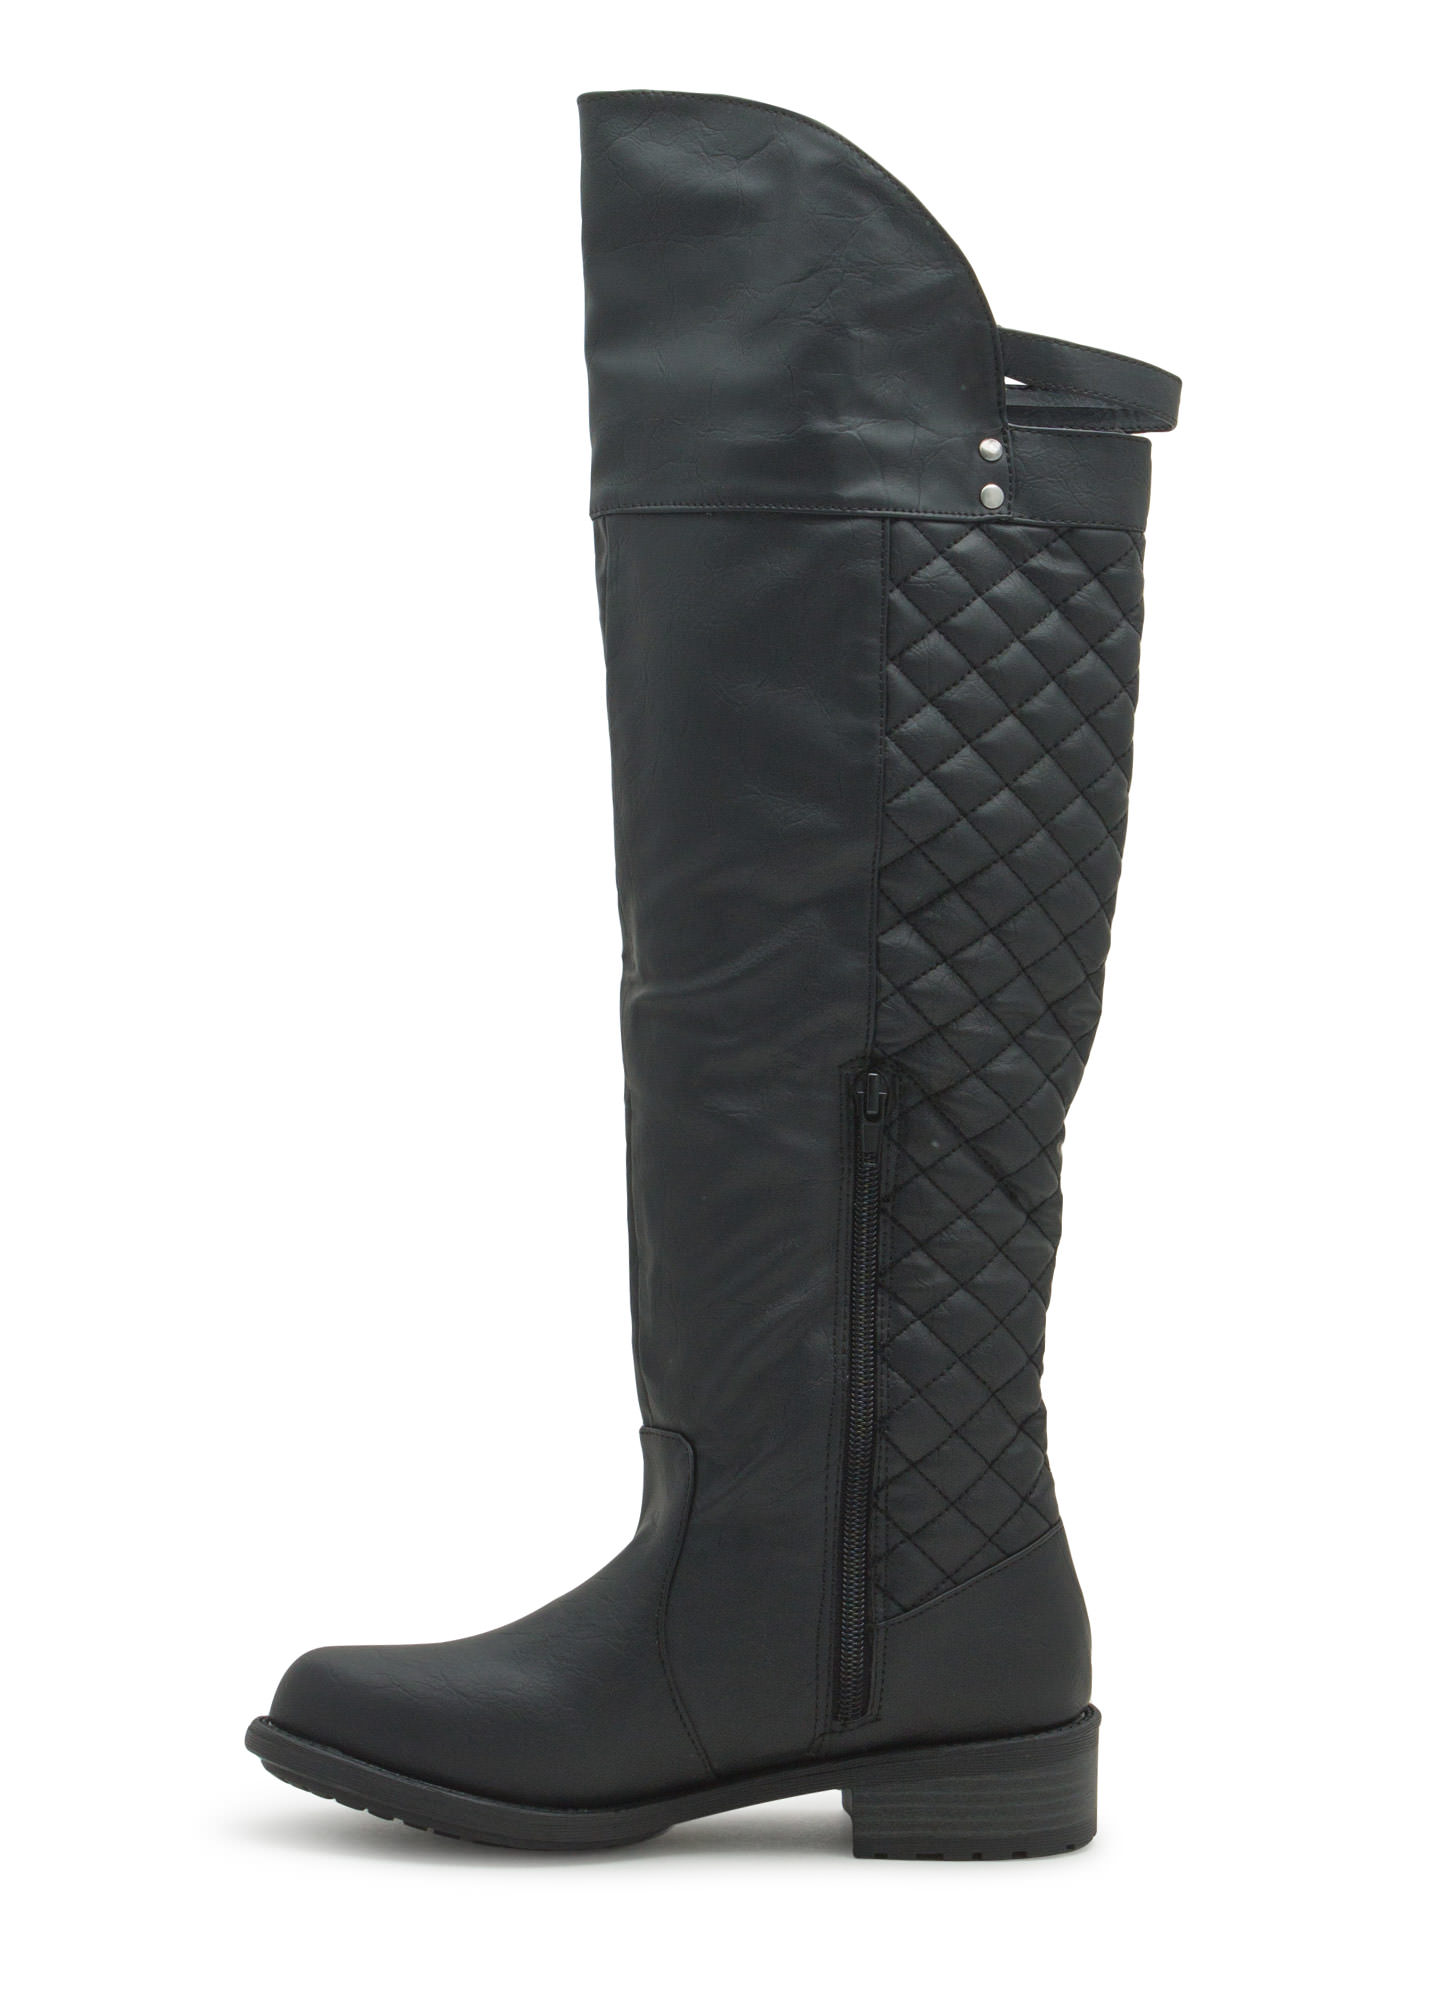 Quilty Pleasure Over-The-Knee Boots BLACK